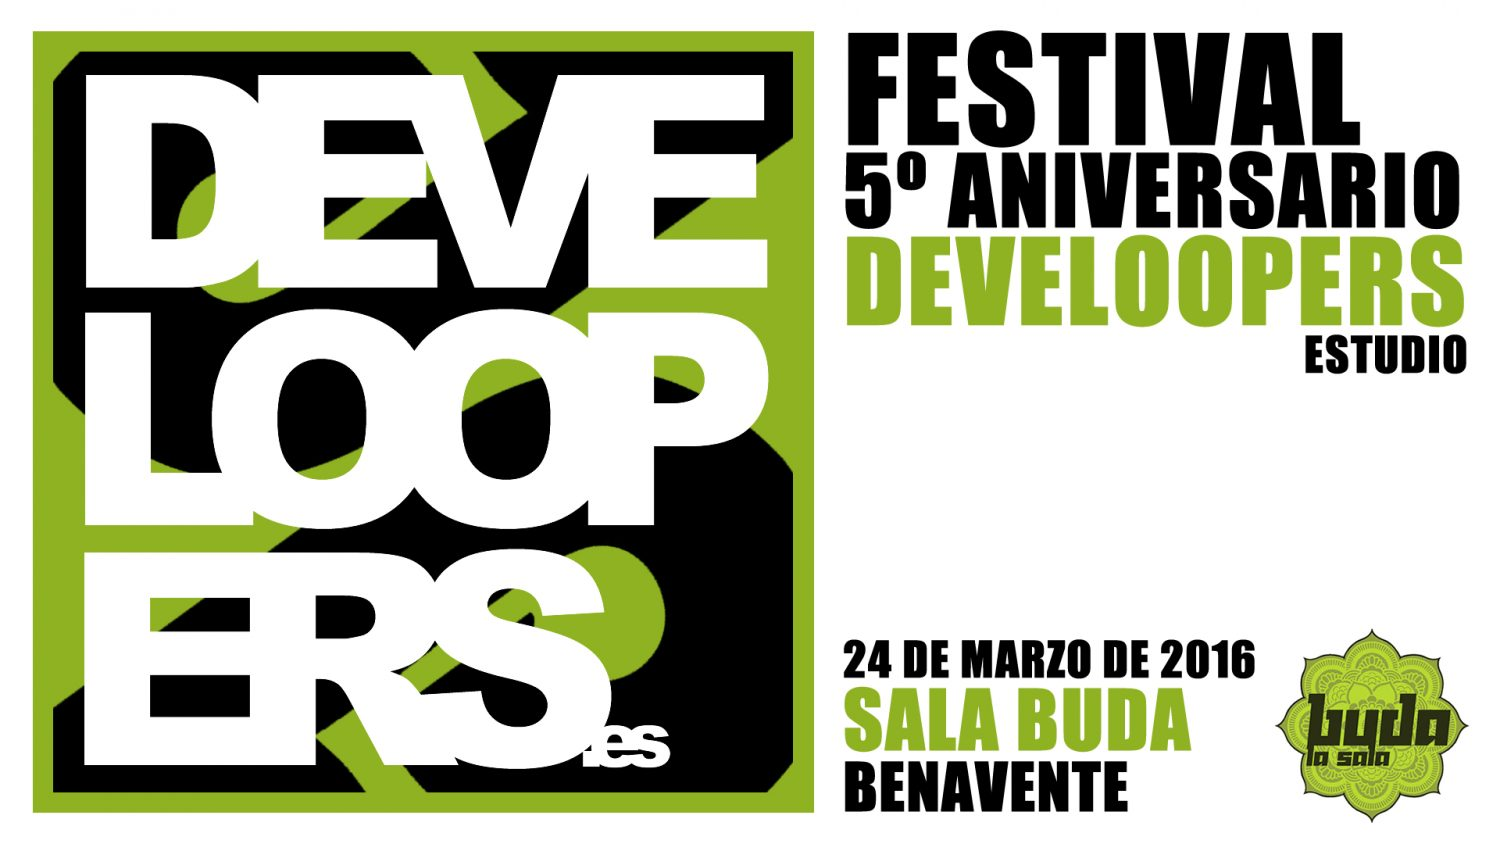 Festival 5º aniversario Develoopers Estudio